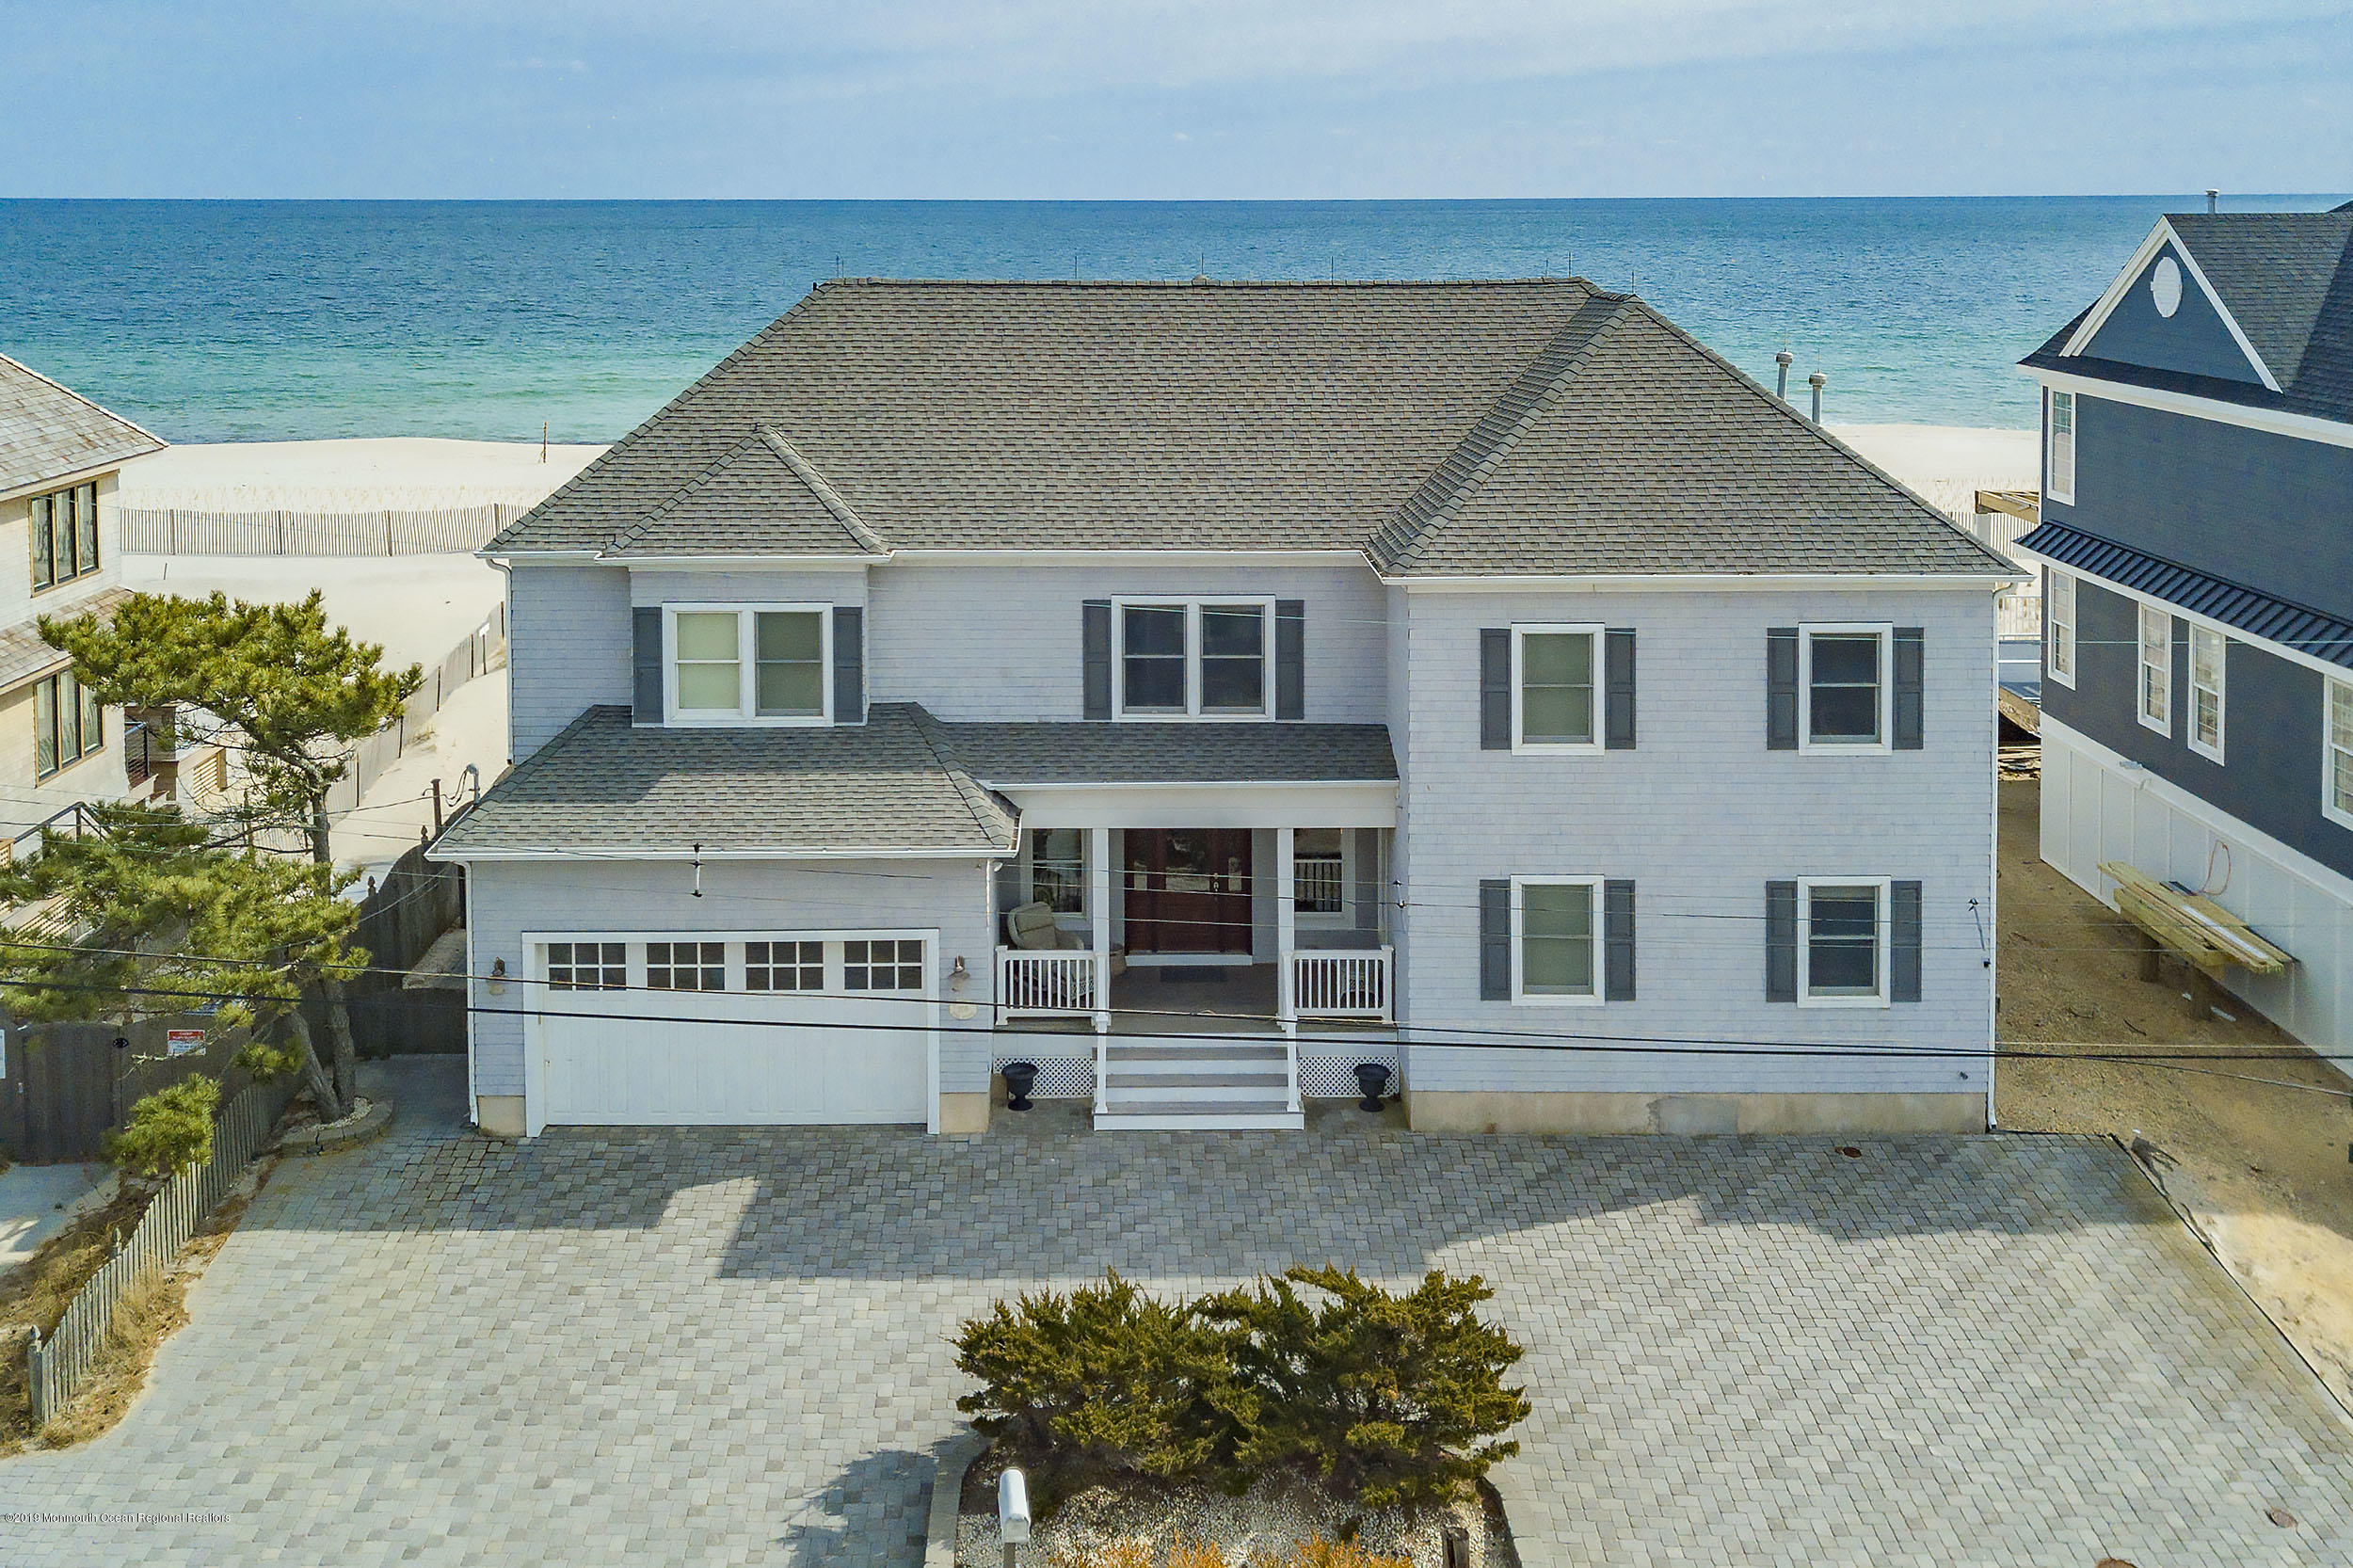 Photo of 206 Dune Avenue, Mantoloking, NJ 08738